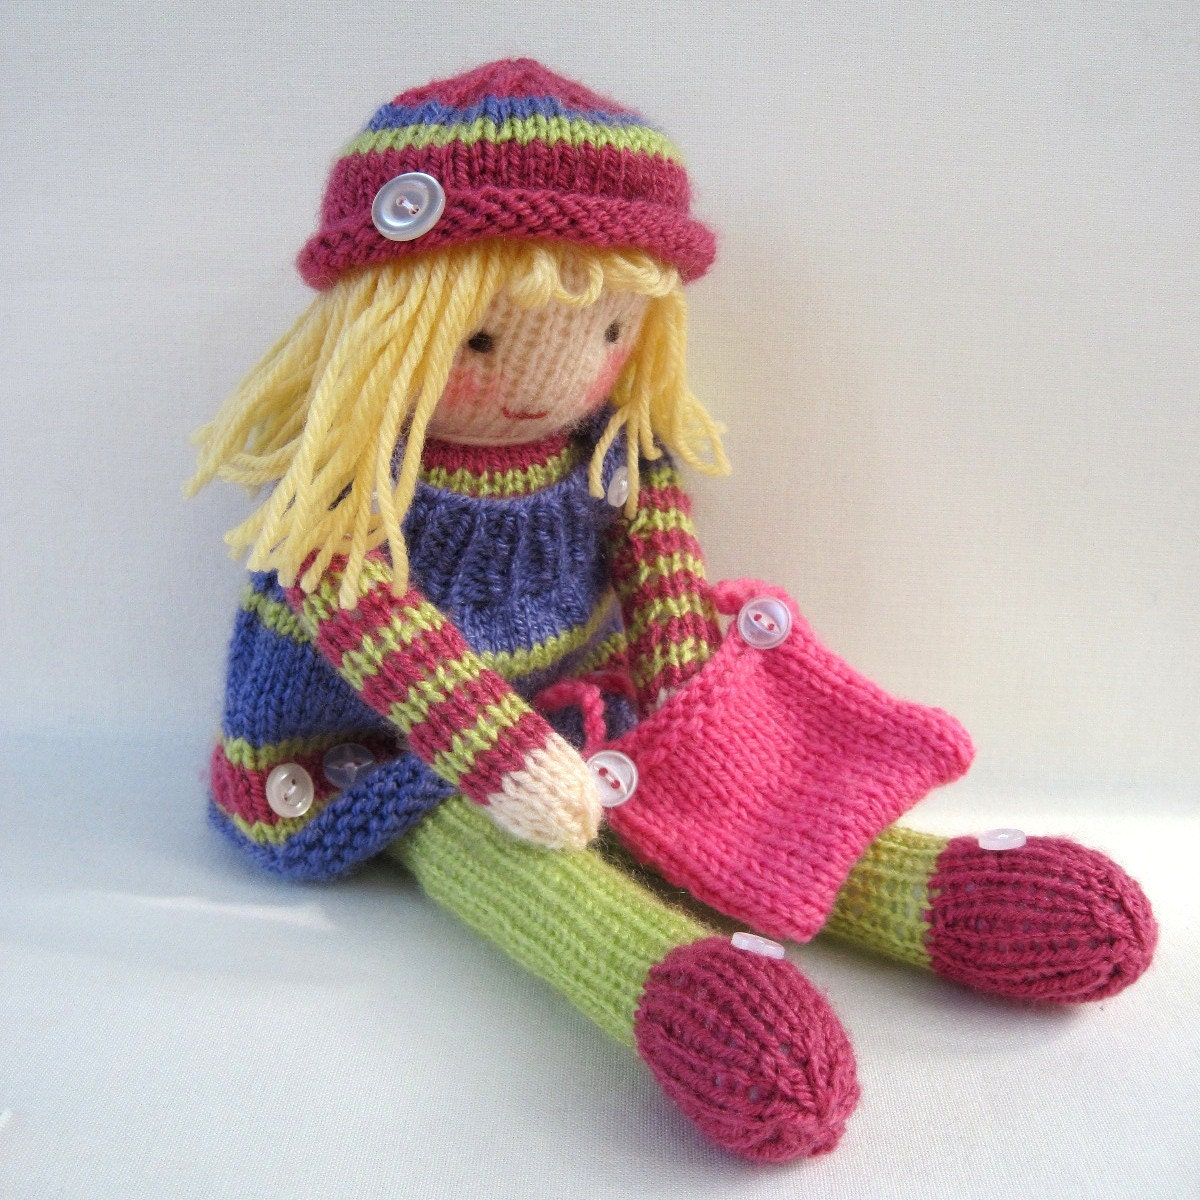 Free Knitting Pattern Doll Mittens : Betsy Button toy doll knitting pattern PDF INSTANT